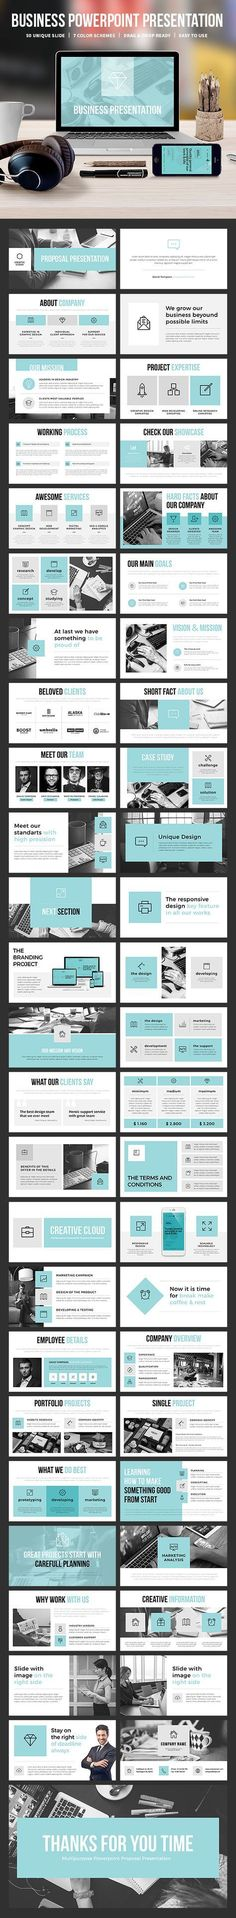 Business Powerpoint Template — Powerpoint PPT #social media #best • Download ➝ https://graphicriver.net/item/business-powerpoint-template/18824707?ref=pxcr